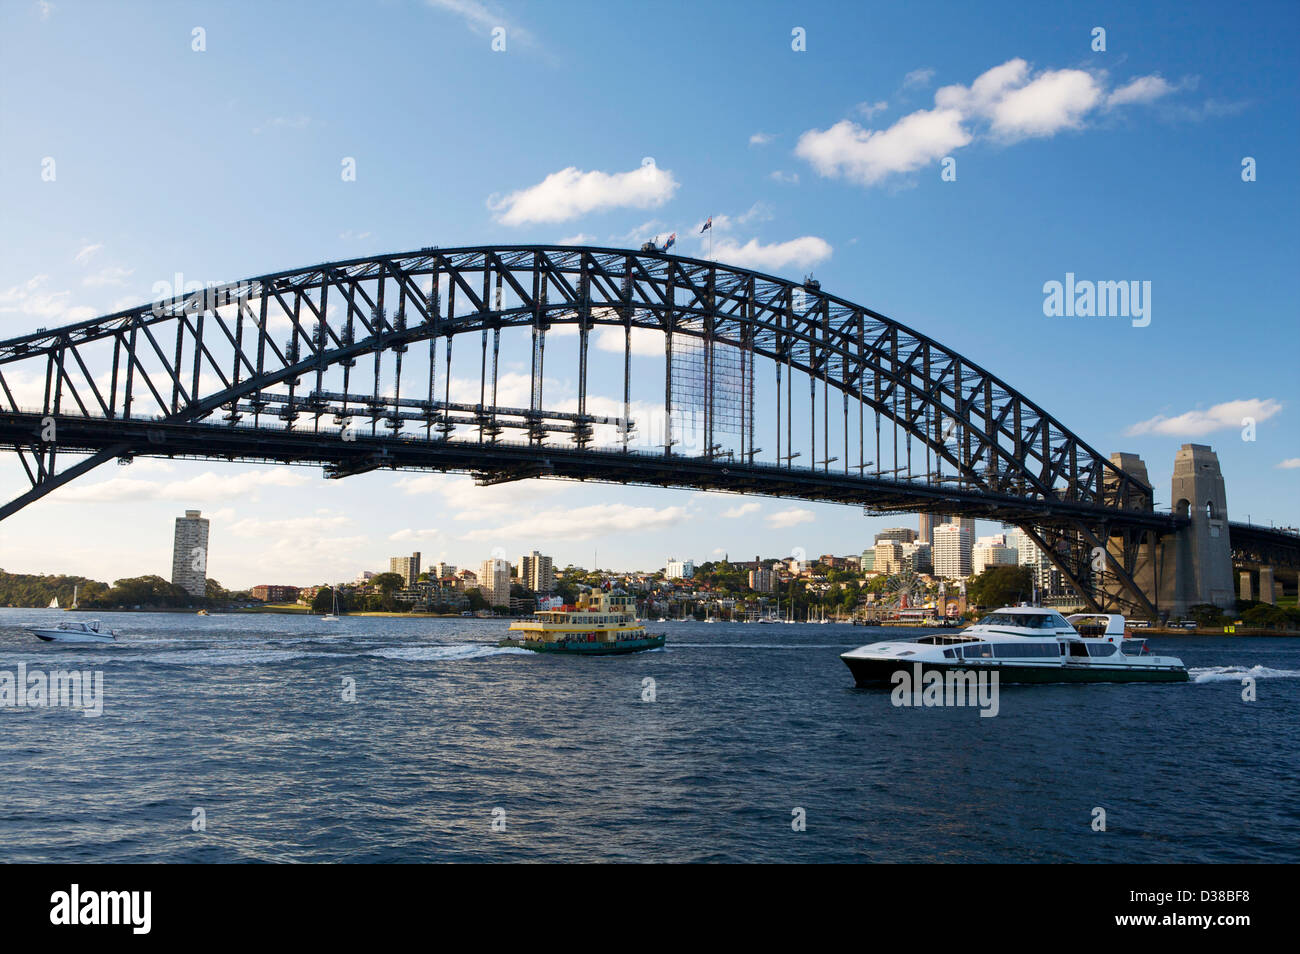 A view of the Sydney Harbor Bridge from the shoreline with public transportation ferries sailing below it. - Stock Image